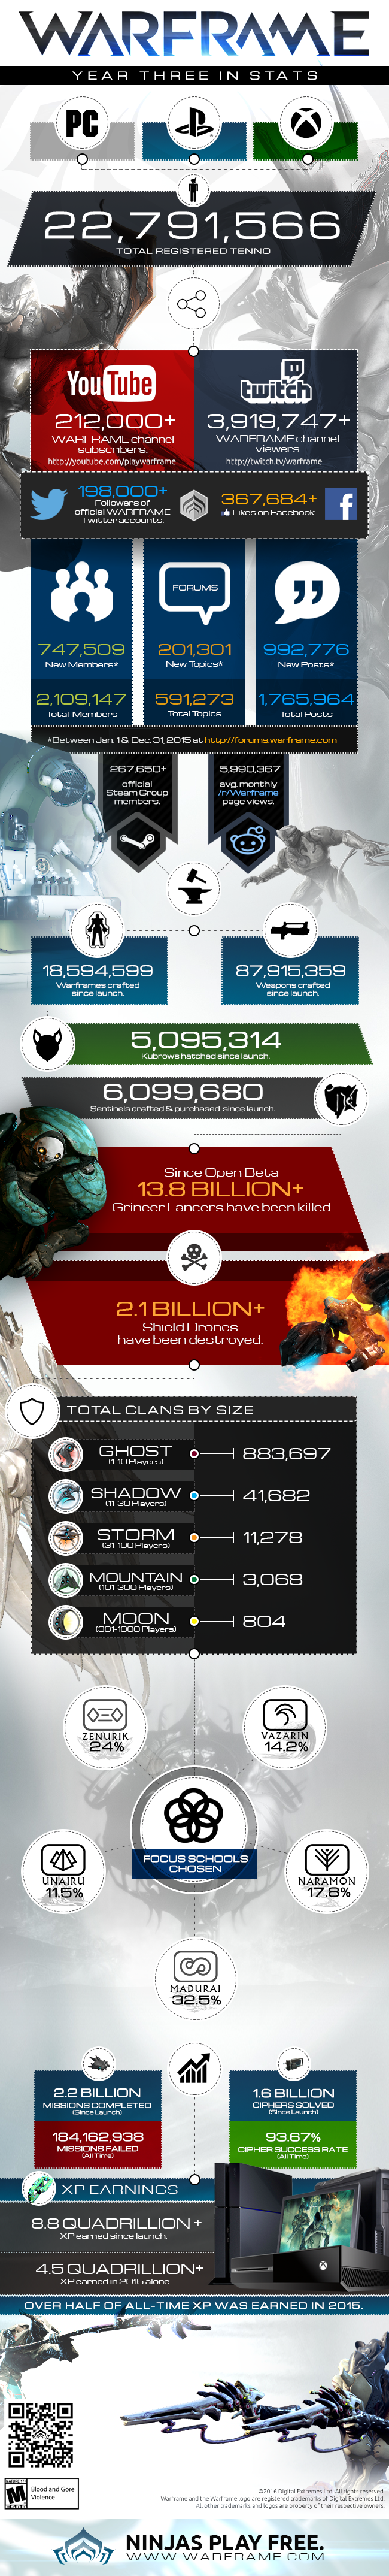 Warframe_Infographic_YearThree